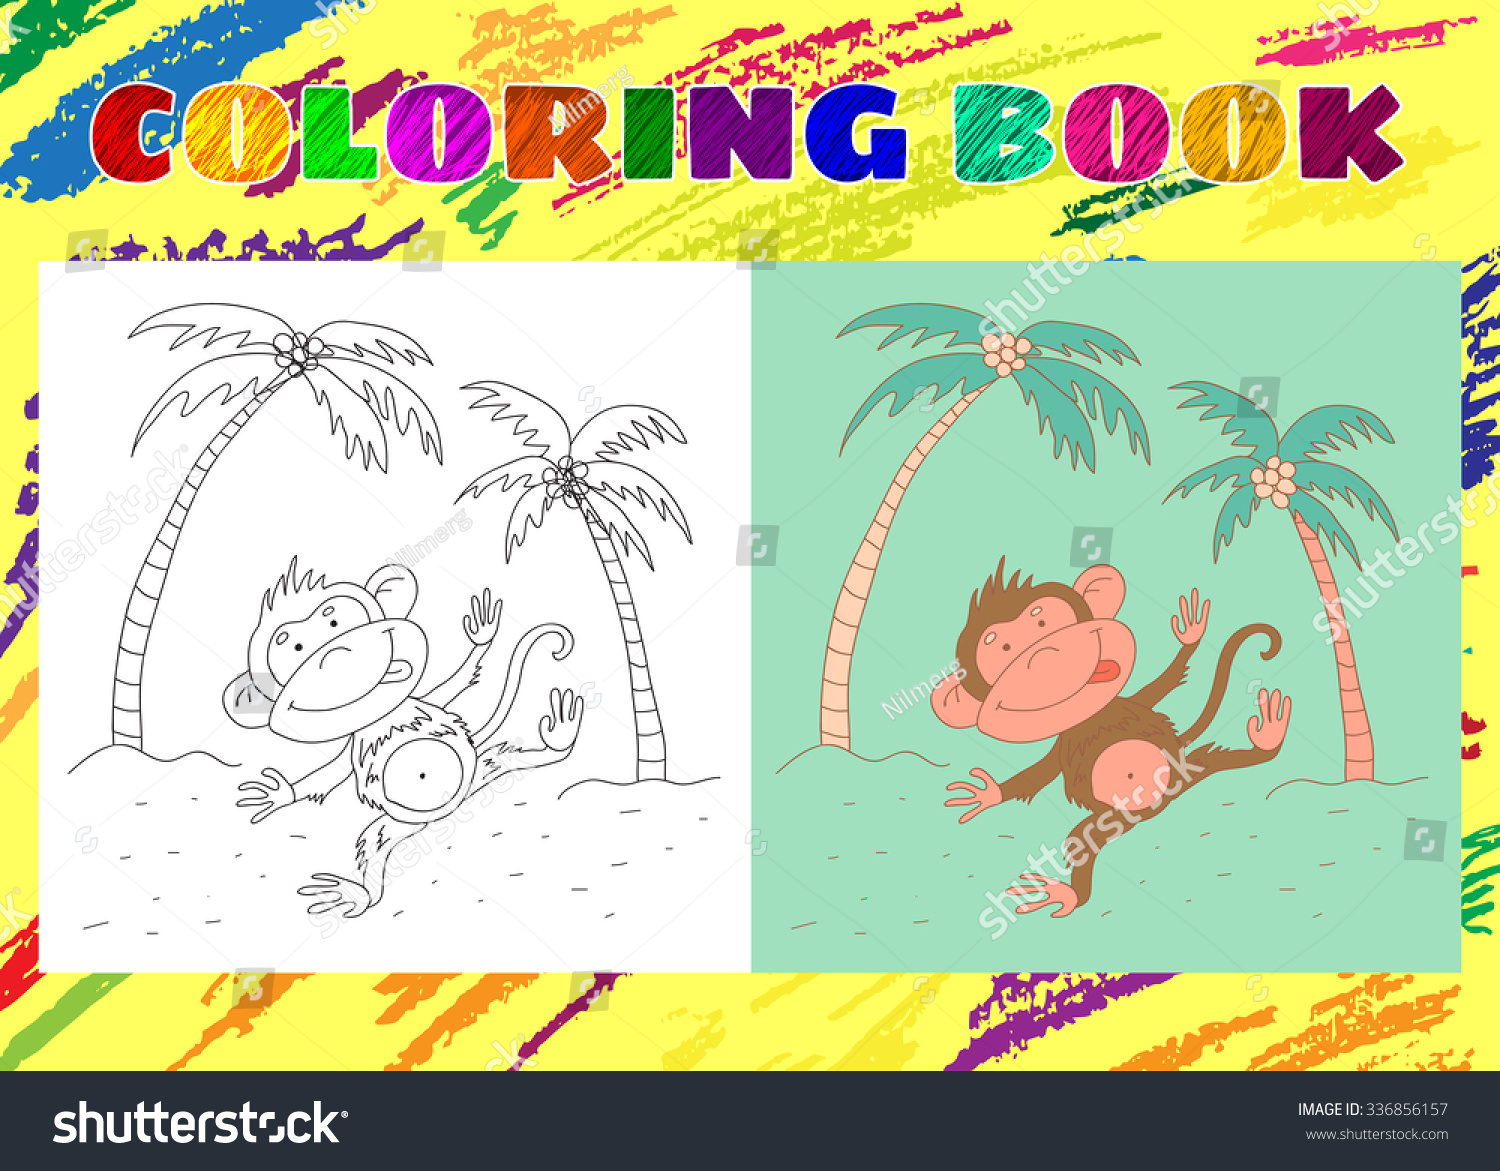 Coloring Book Kids Sketchy Little Pink Stock Vector (Royalty Free